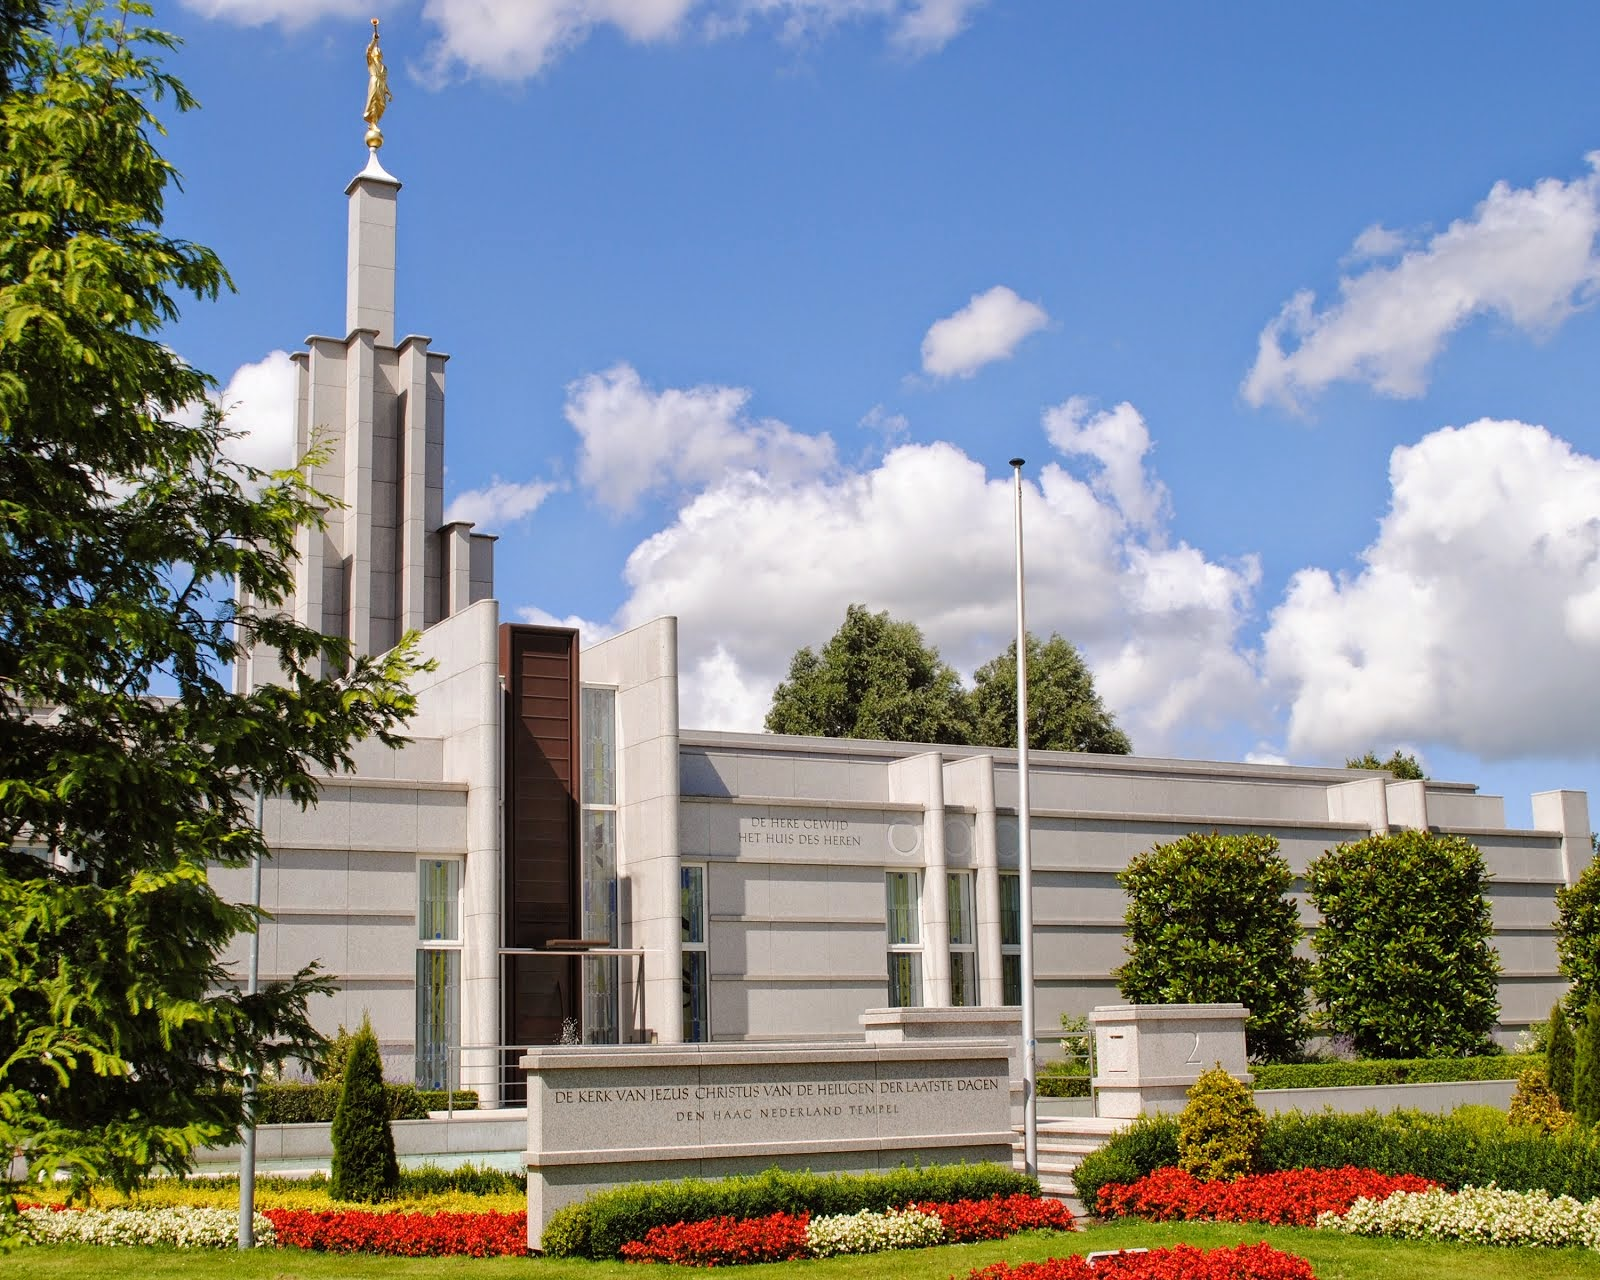 The Hague Temple